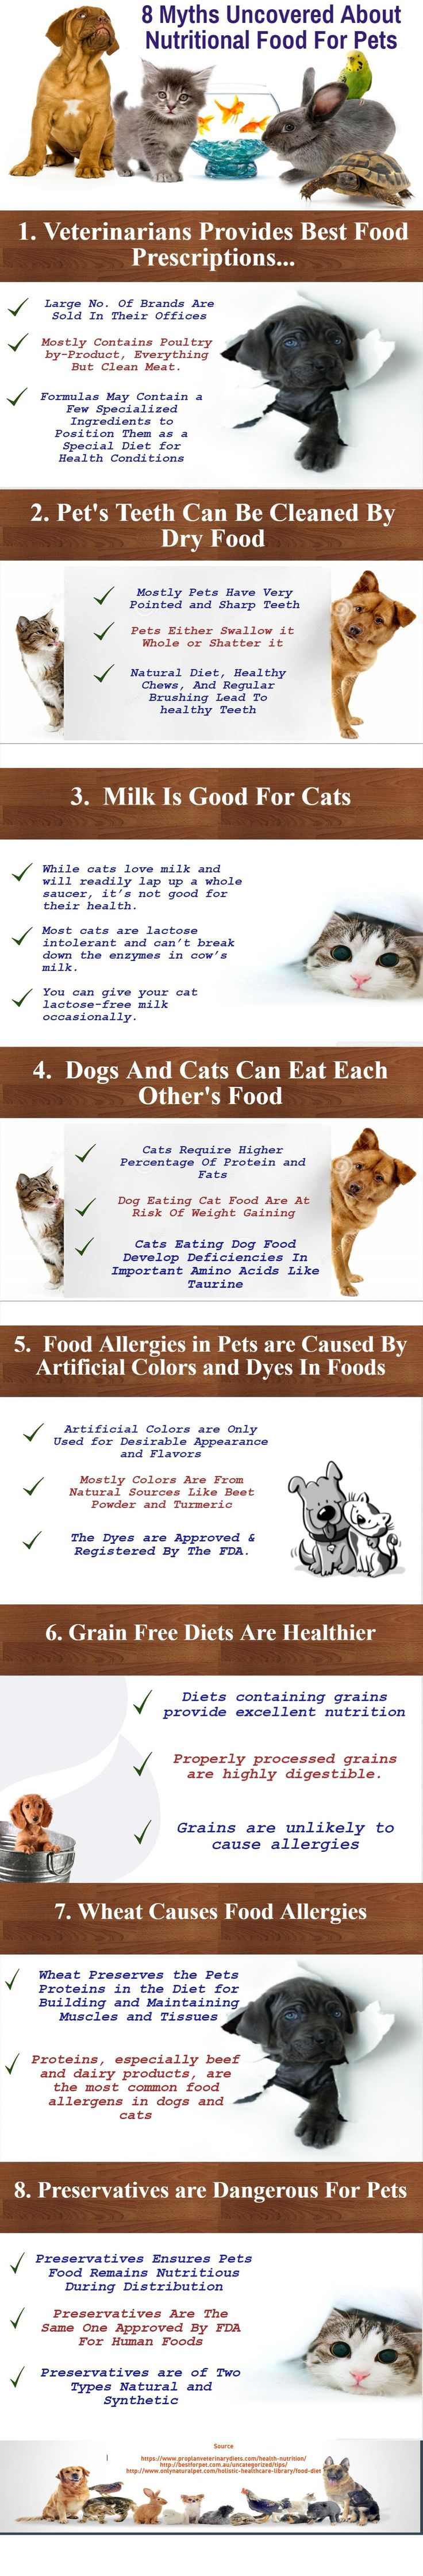 8 Myths Uncovered About Nutritional Food For Pets | Animal Bliss